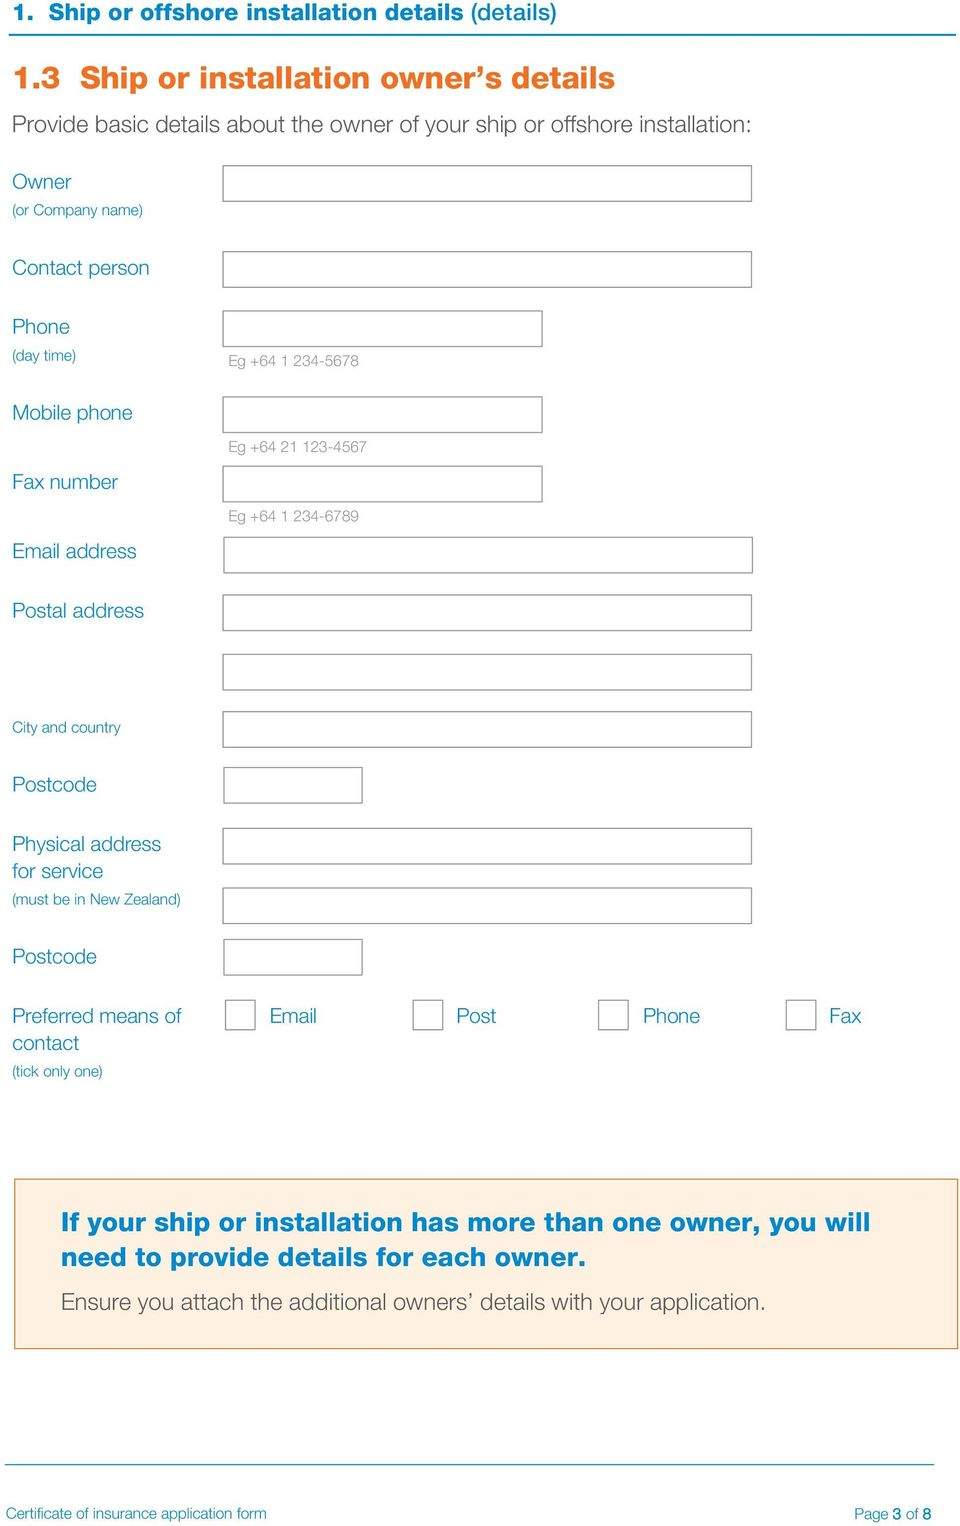 Certificate of insurance application form - PDF